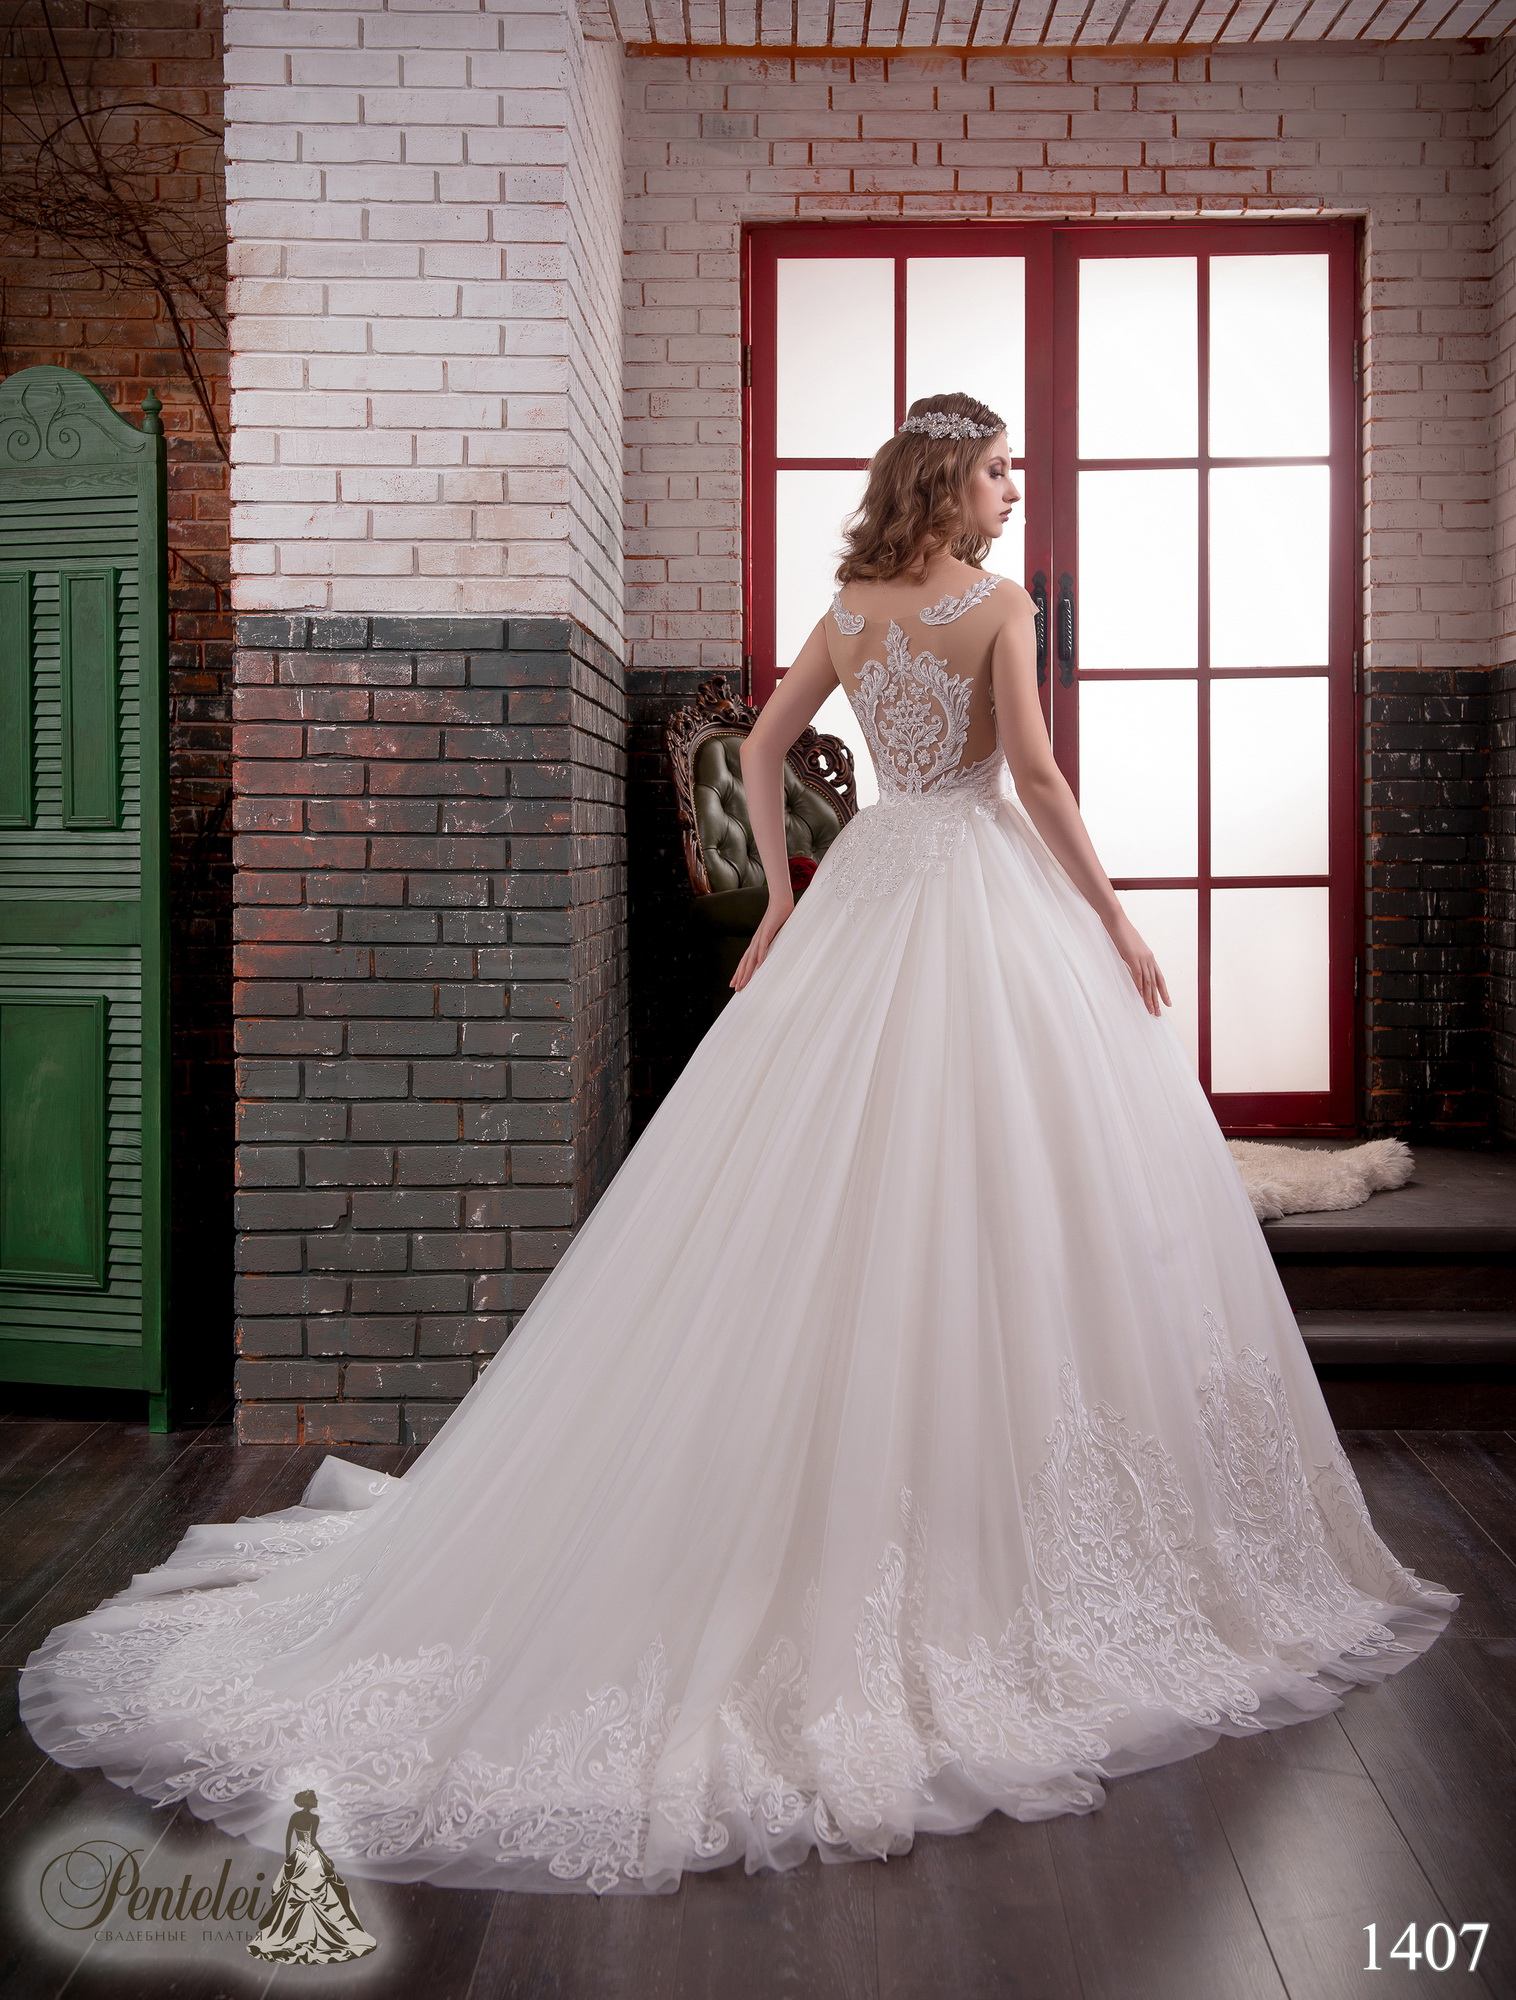 1407 | Buy wedding dresses wholesale from Pentelei